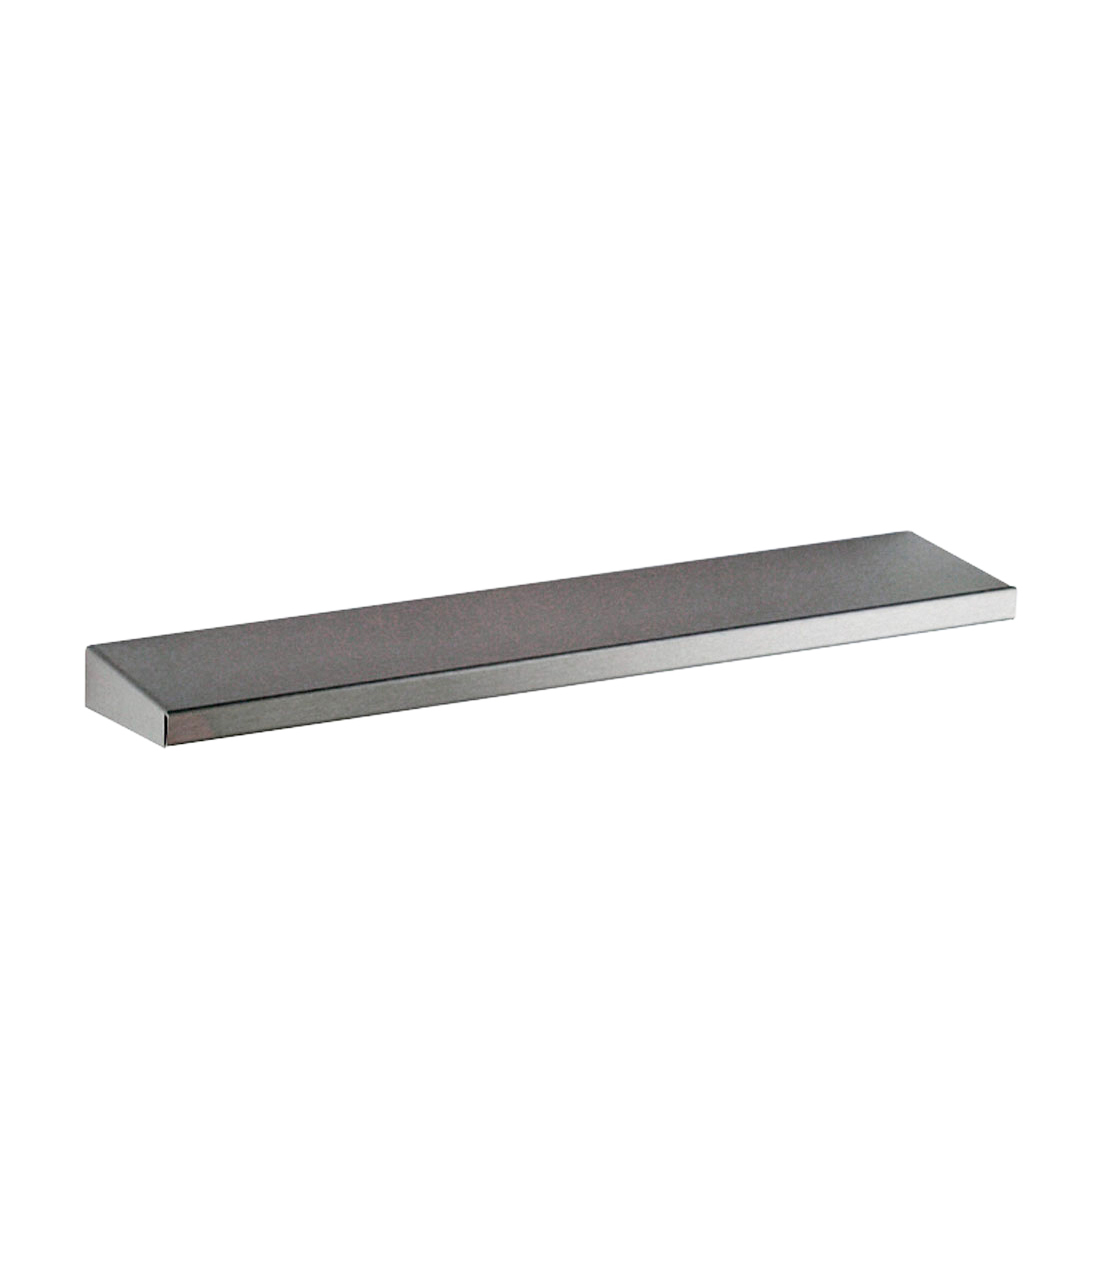 Gamco MS-18 Stainless Steel Mirror Shelf - 18""